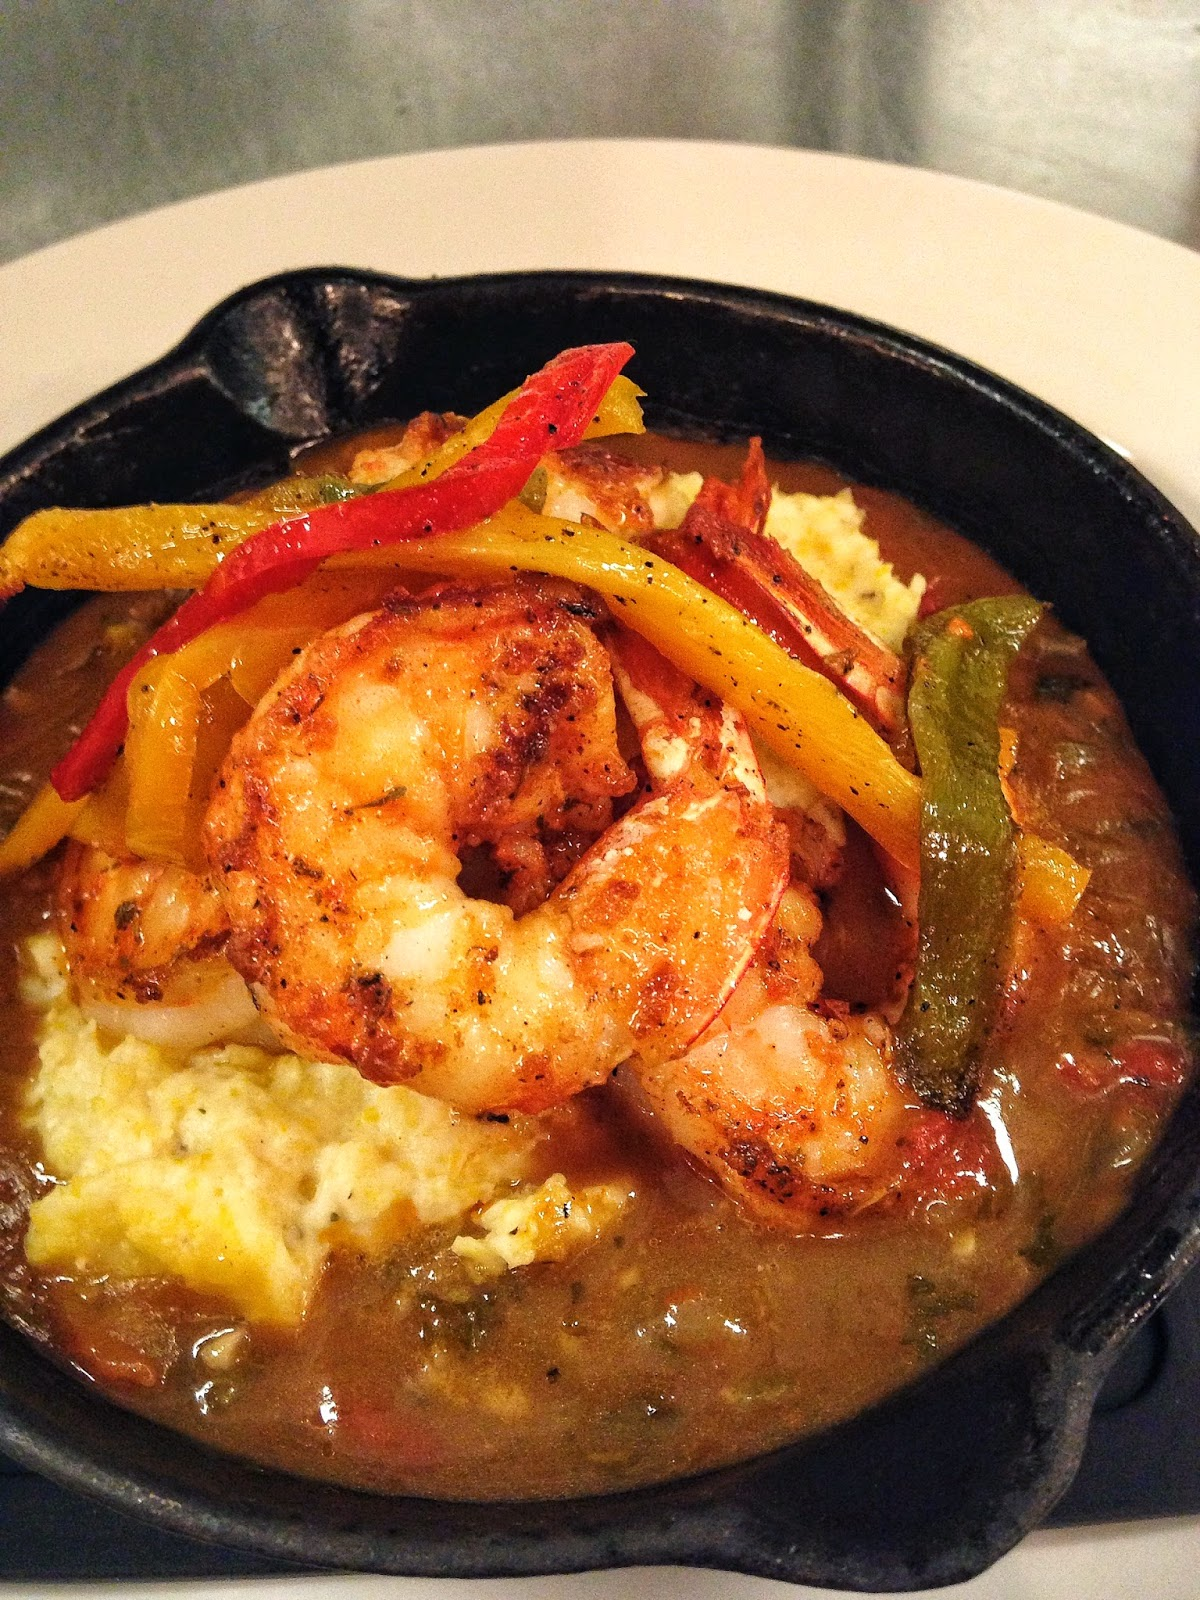 grits lowcountry shrimp and grits shrimp and grits with bacon shrimp ...